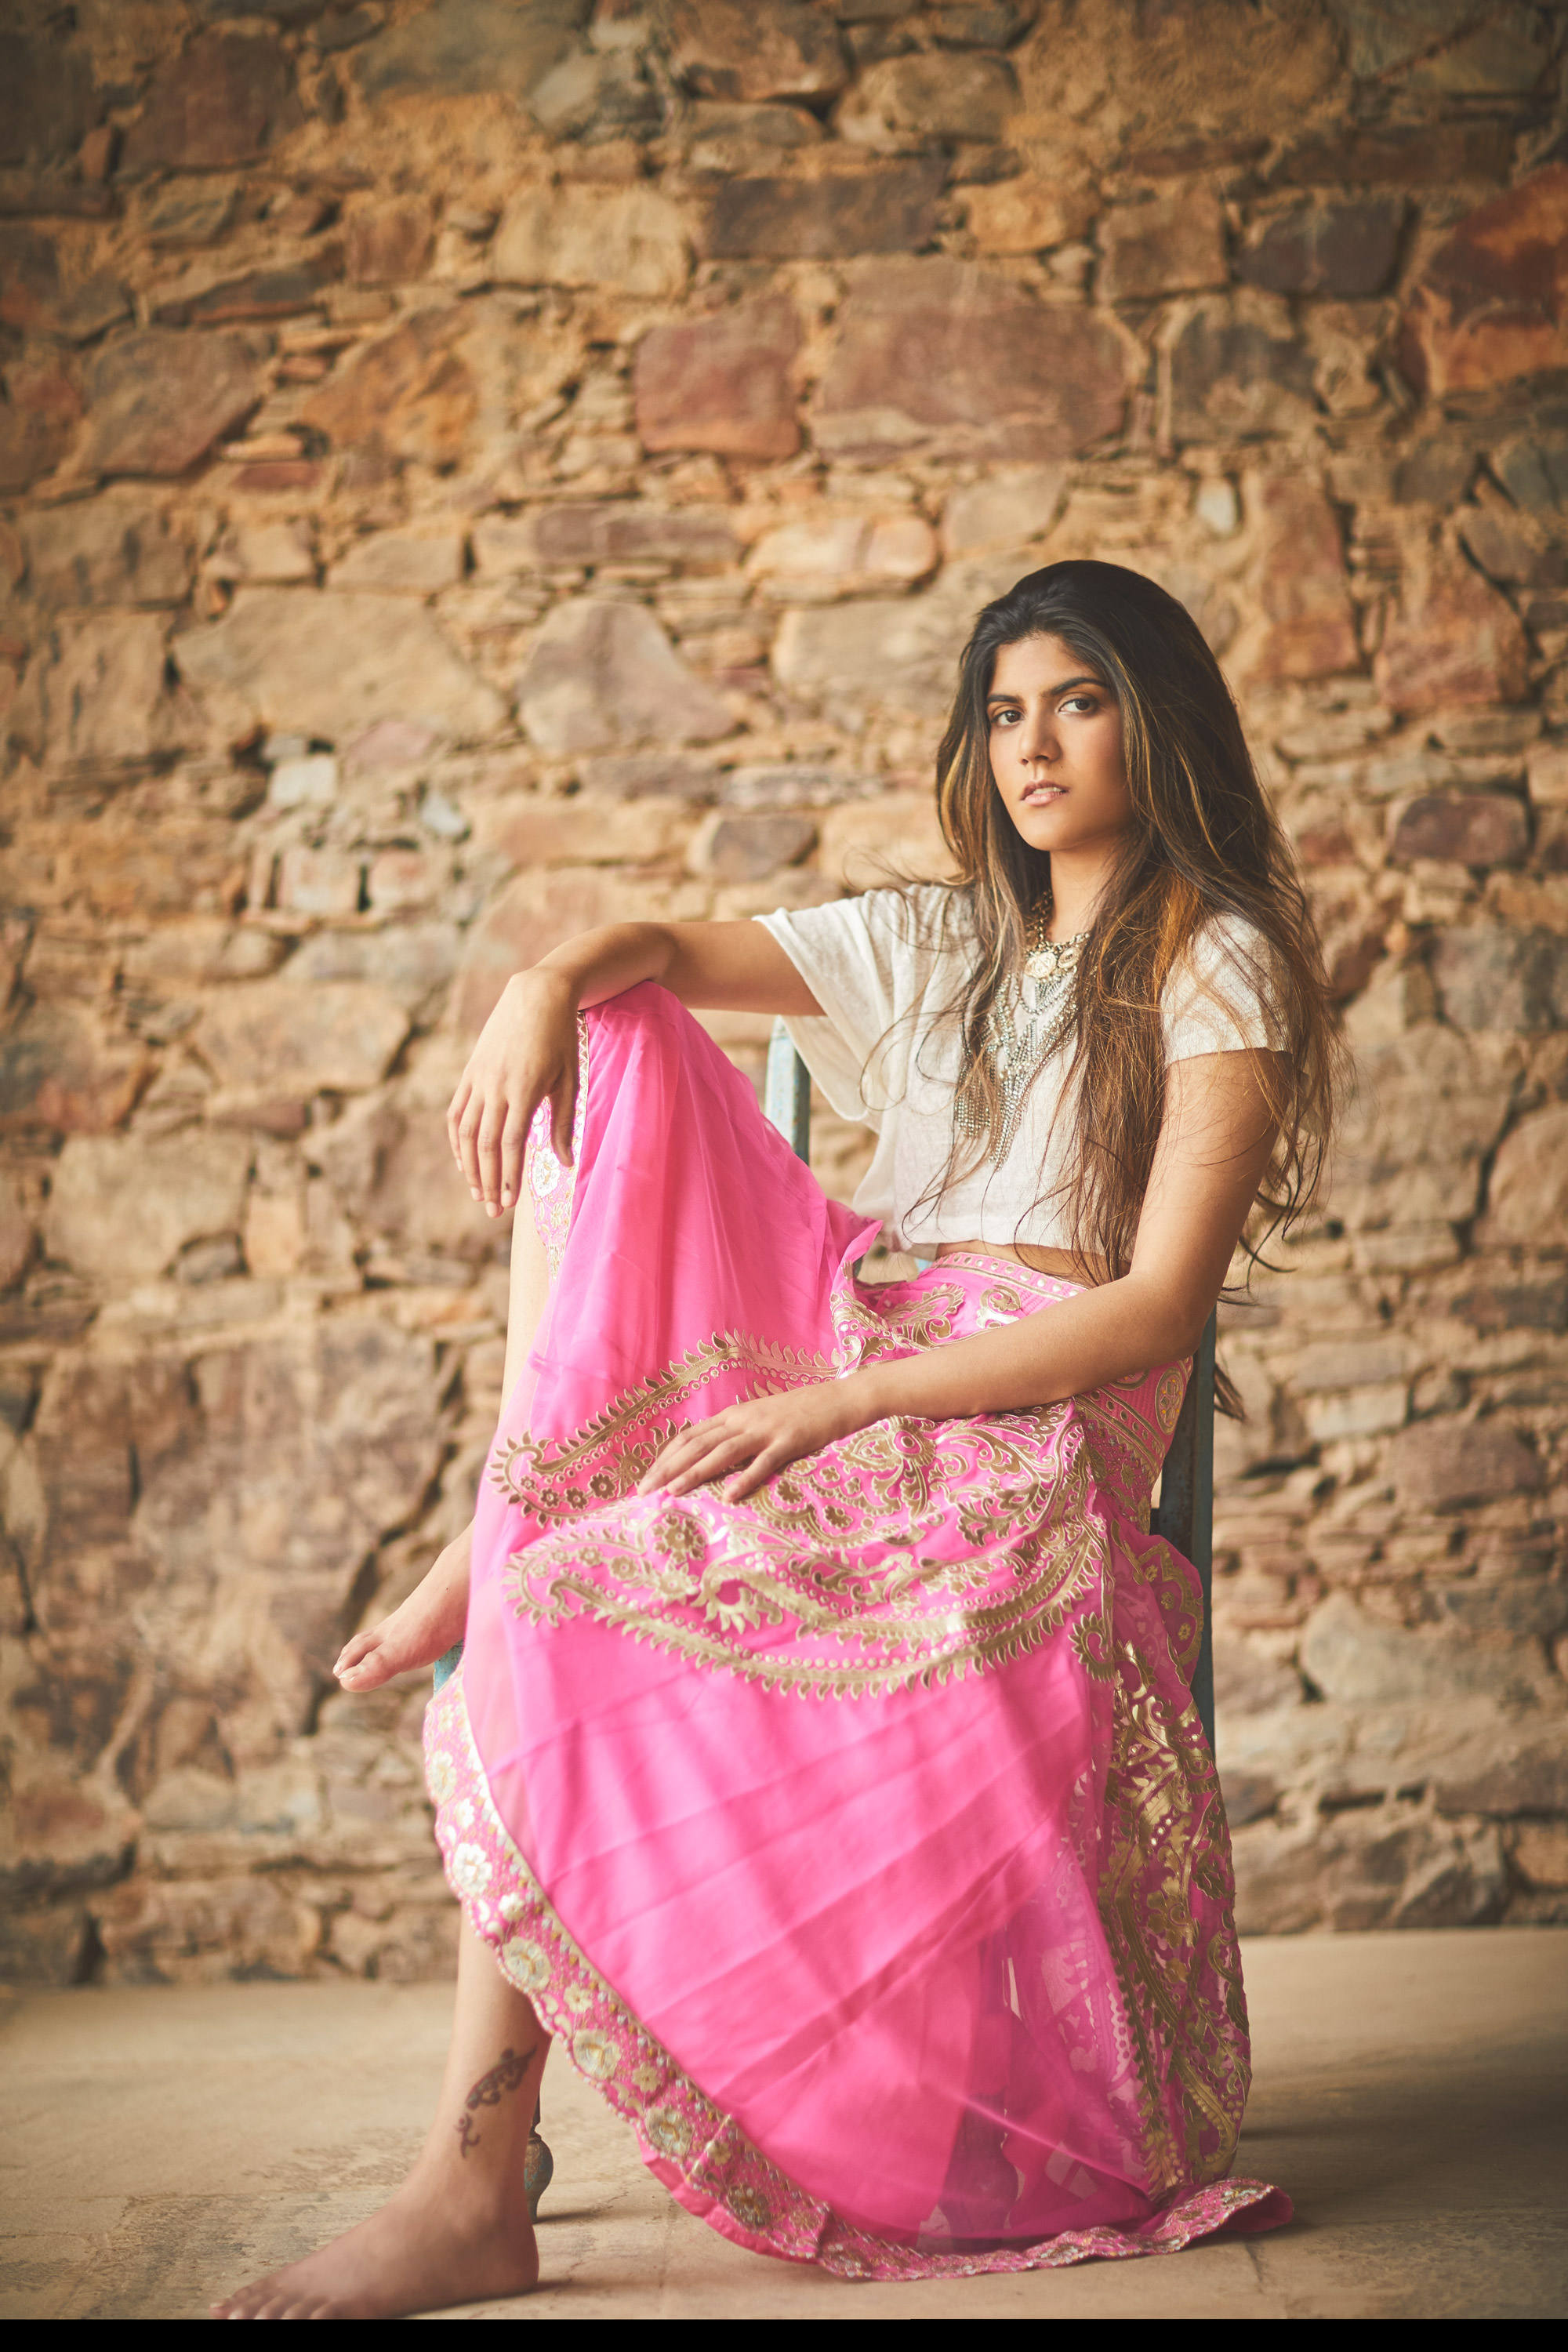 Cutting through the clutter of Bollywood music, Ananya Birla is the first Indian artiste to go Platinum in the country to sing in English. (Photo Credit: Ananya Birla)